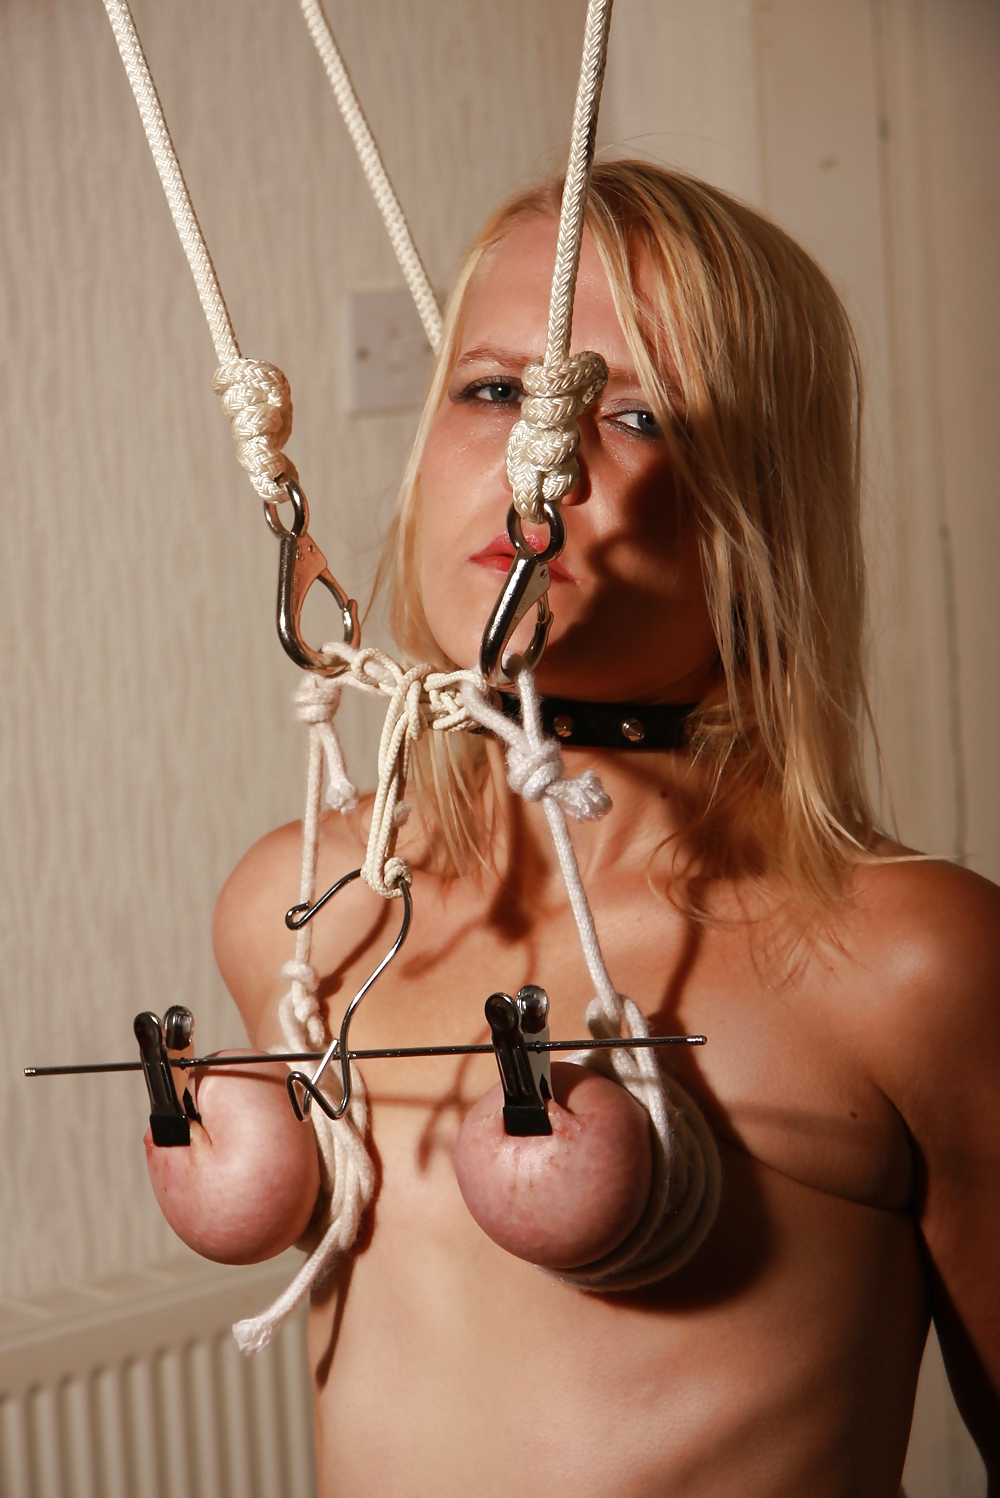 tortured-breasts-video